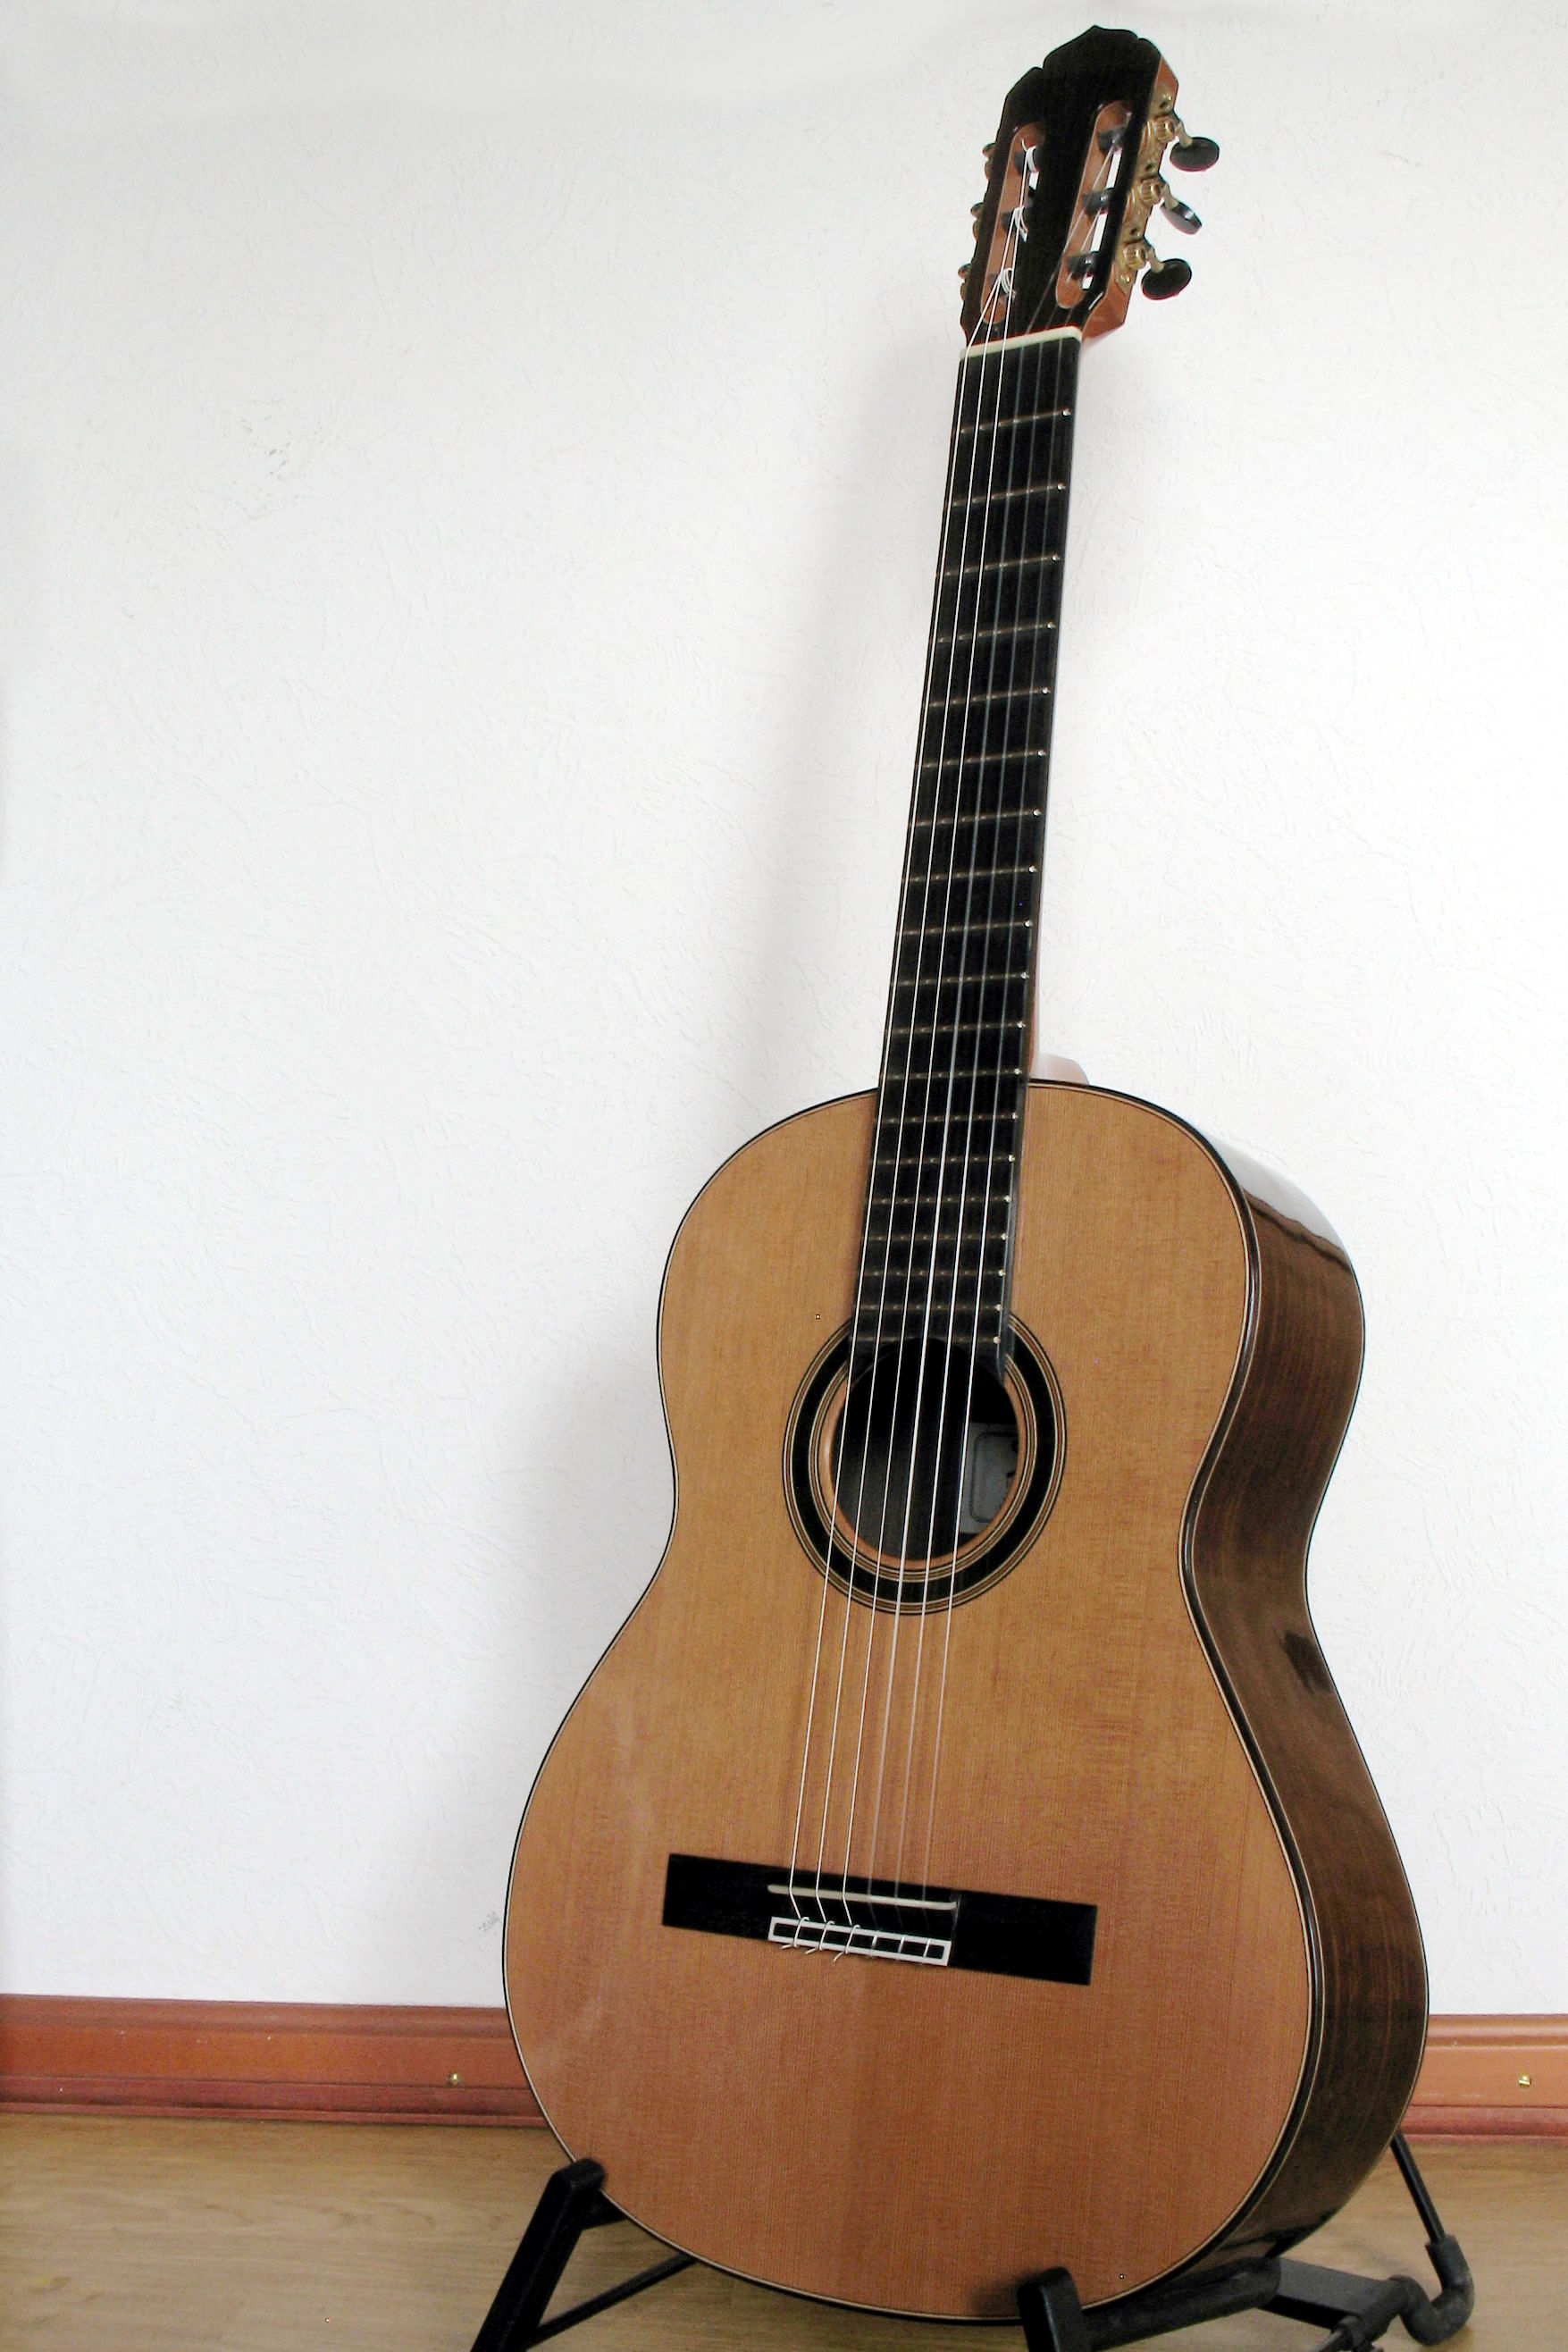 Nylonstring Guitar Classic Line Proscale length 63 cm with wide neck